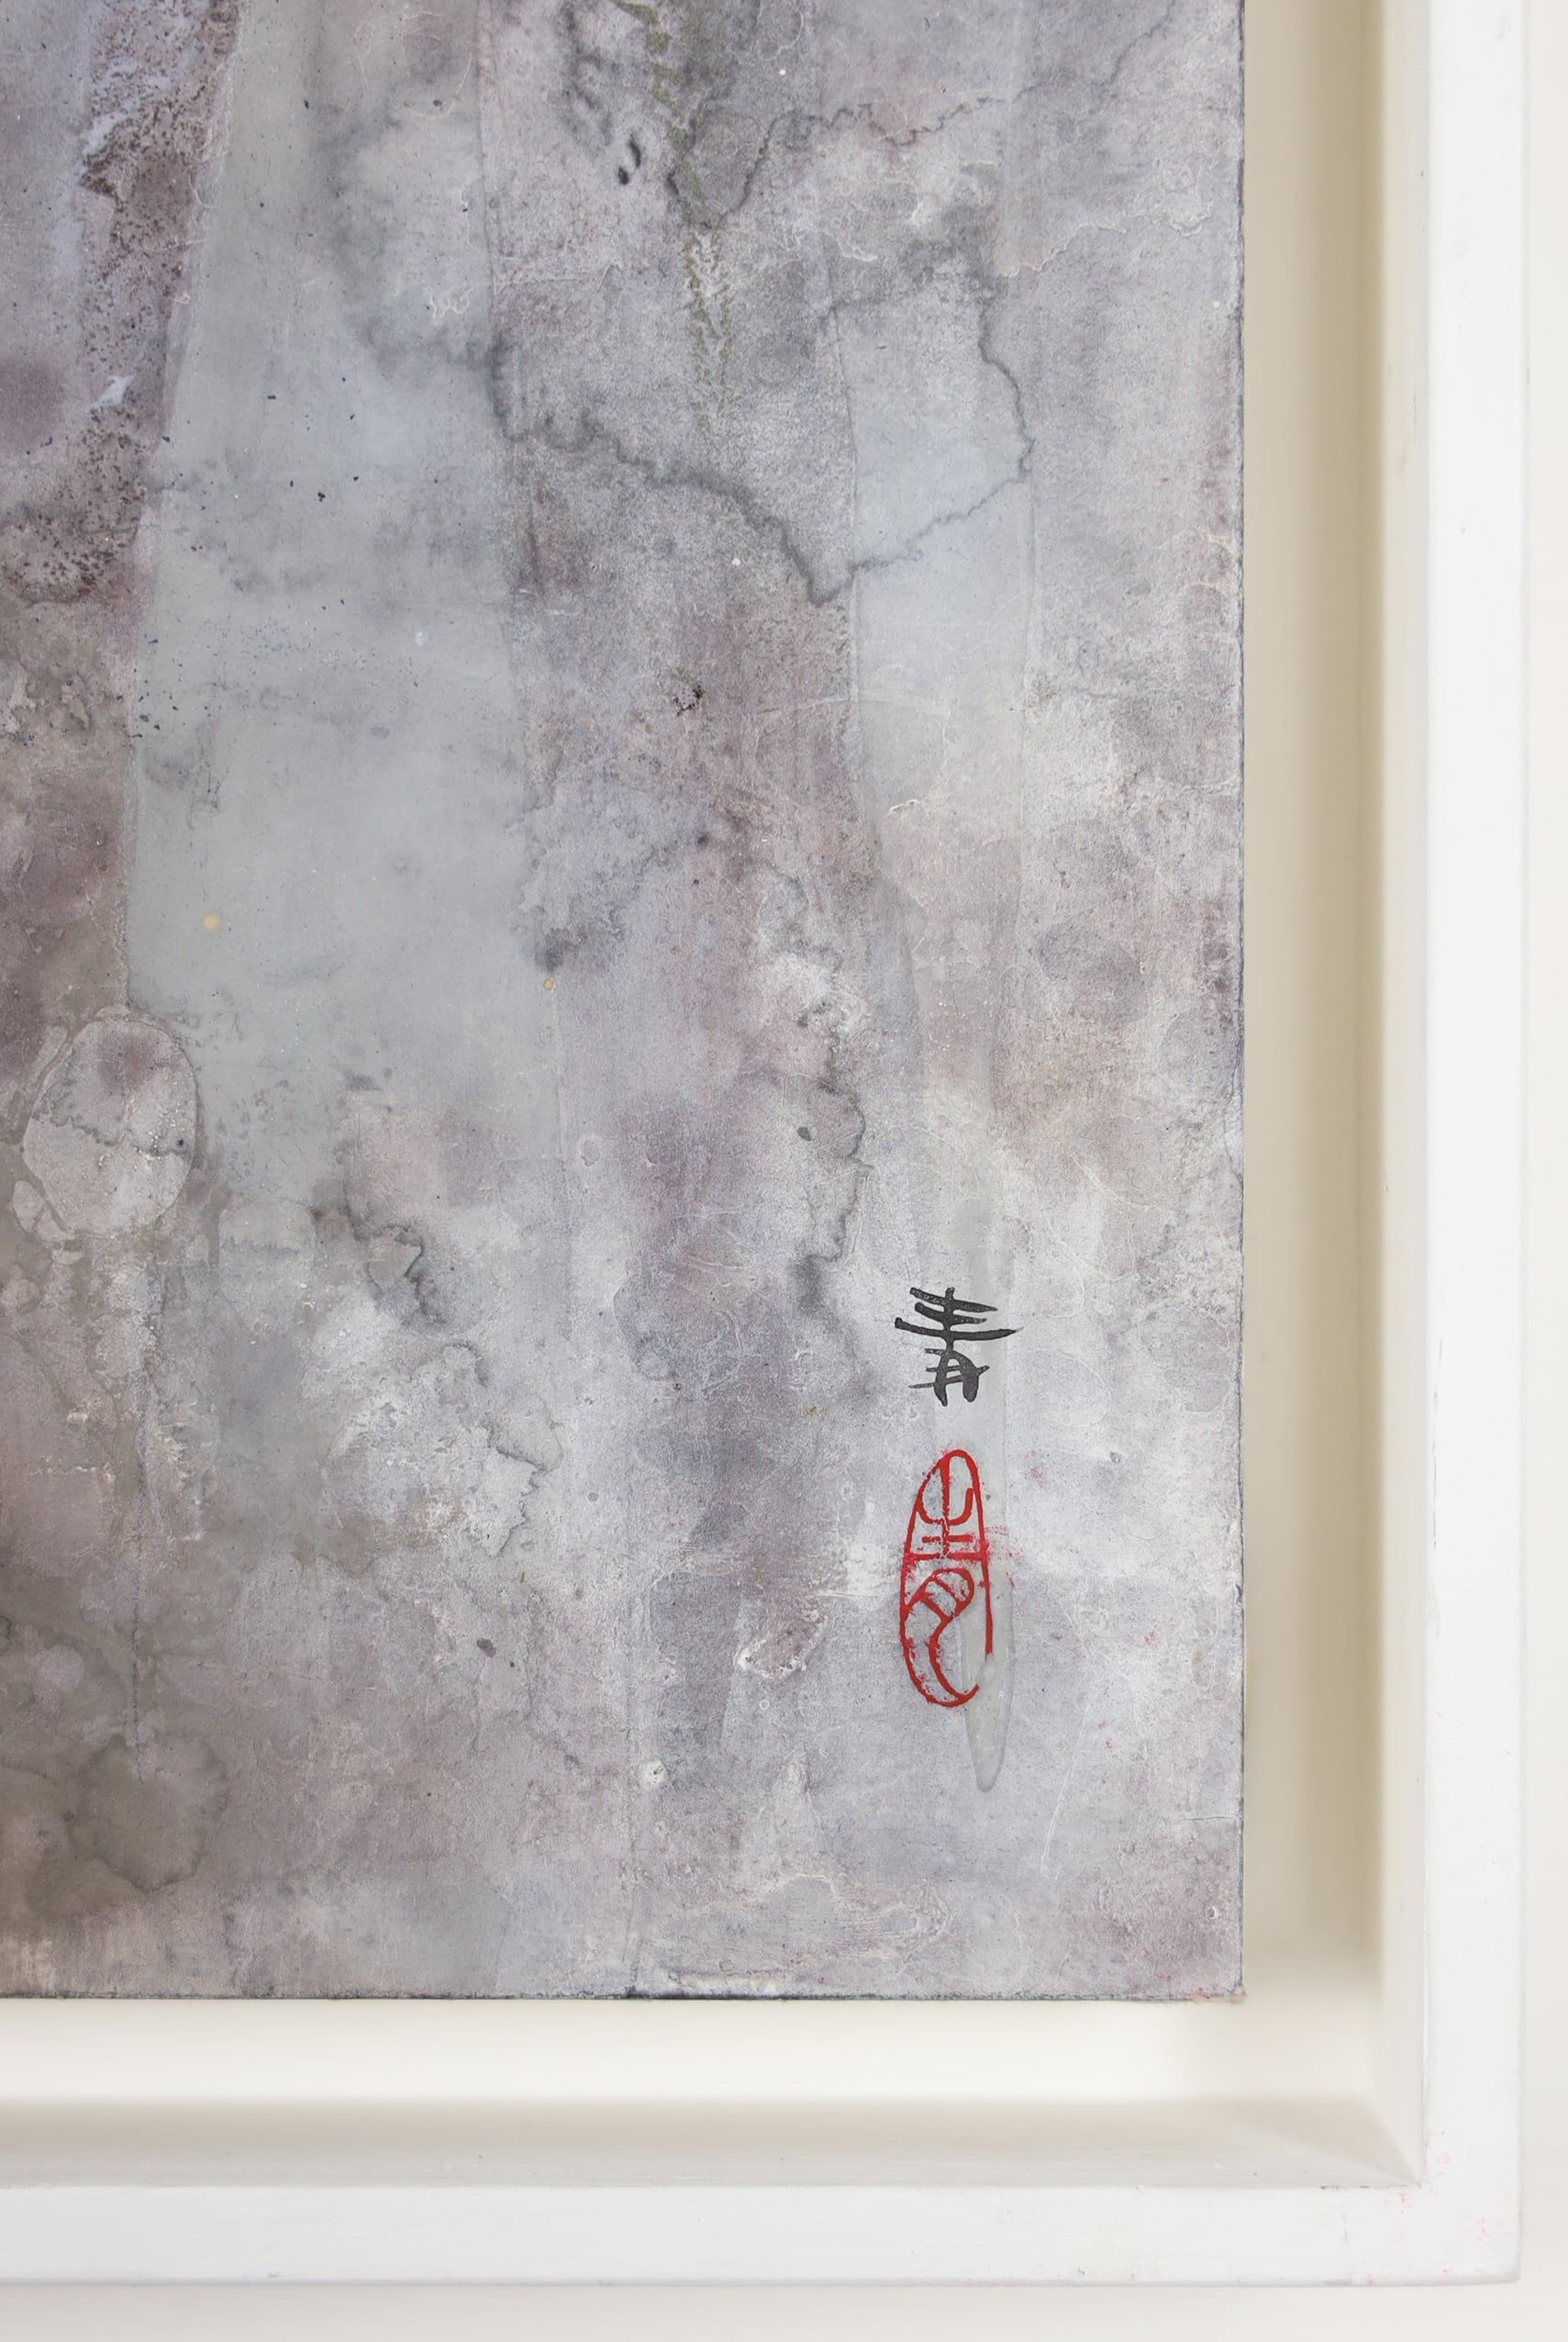 temps - Chen Yiching - Contemporary painting - detail 4